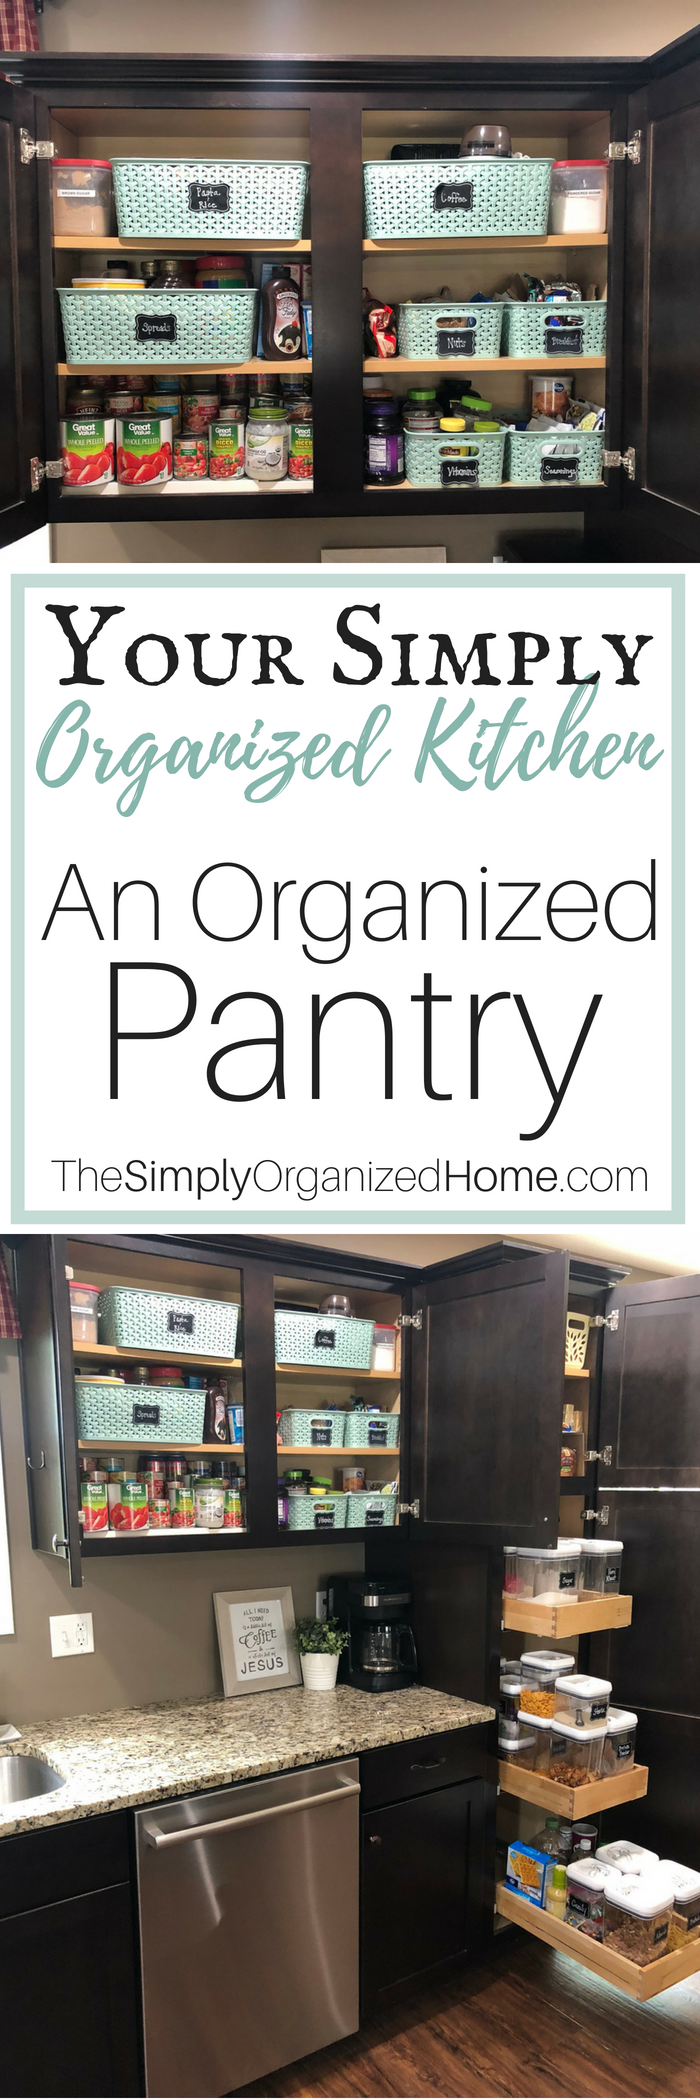 Simplify Your Kitchen with an Organized Pantry - The Simply ...